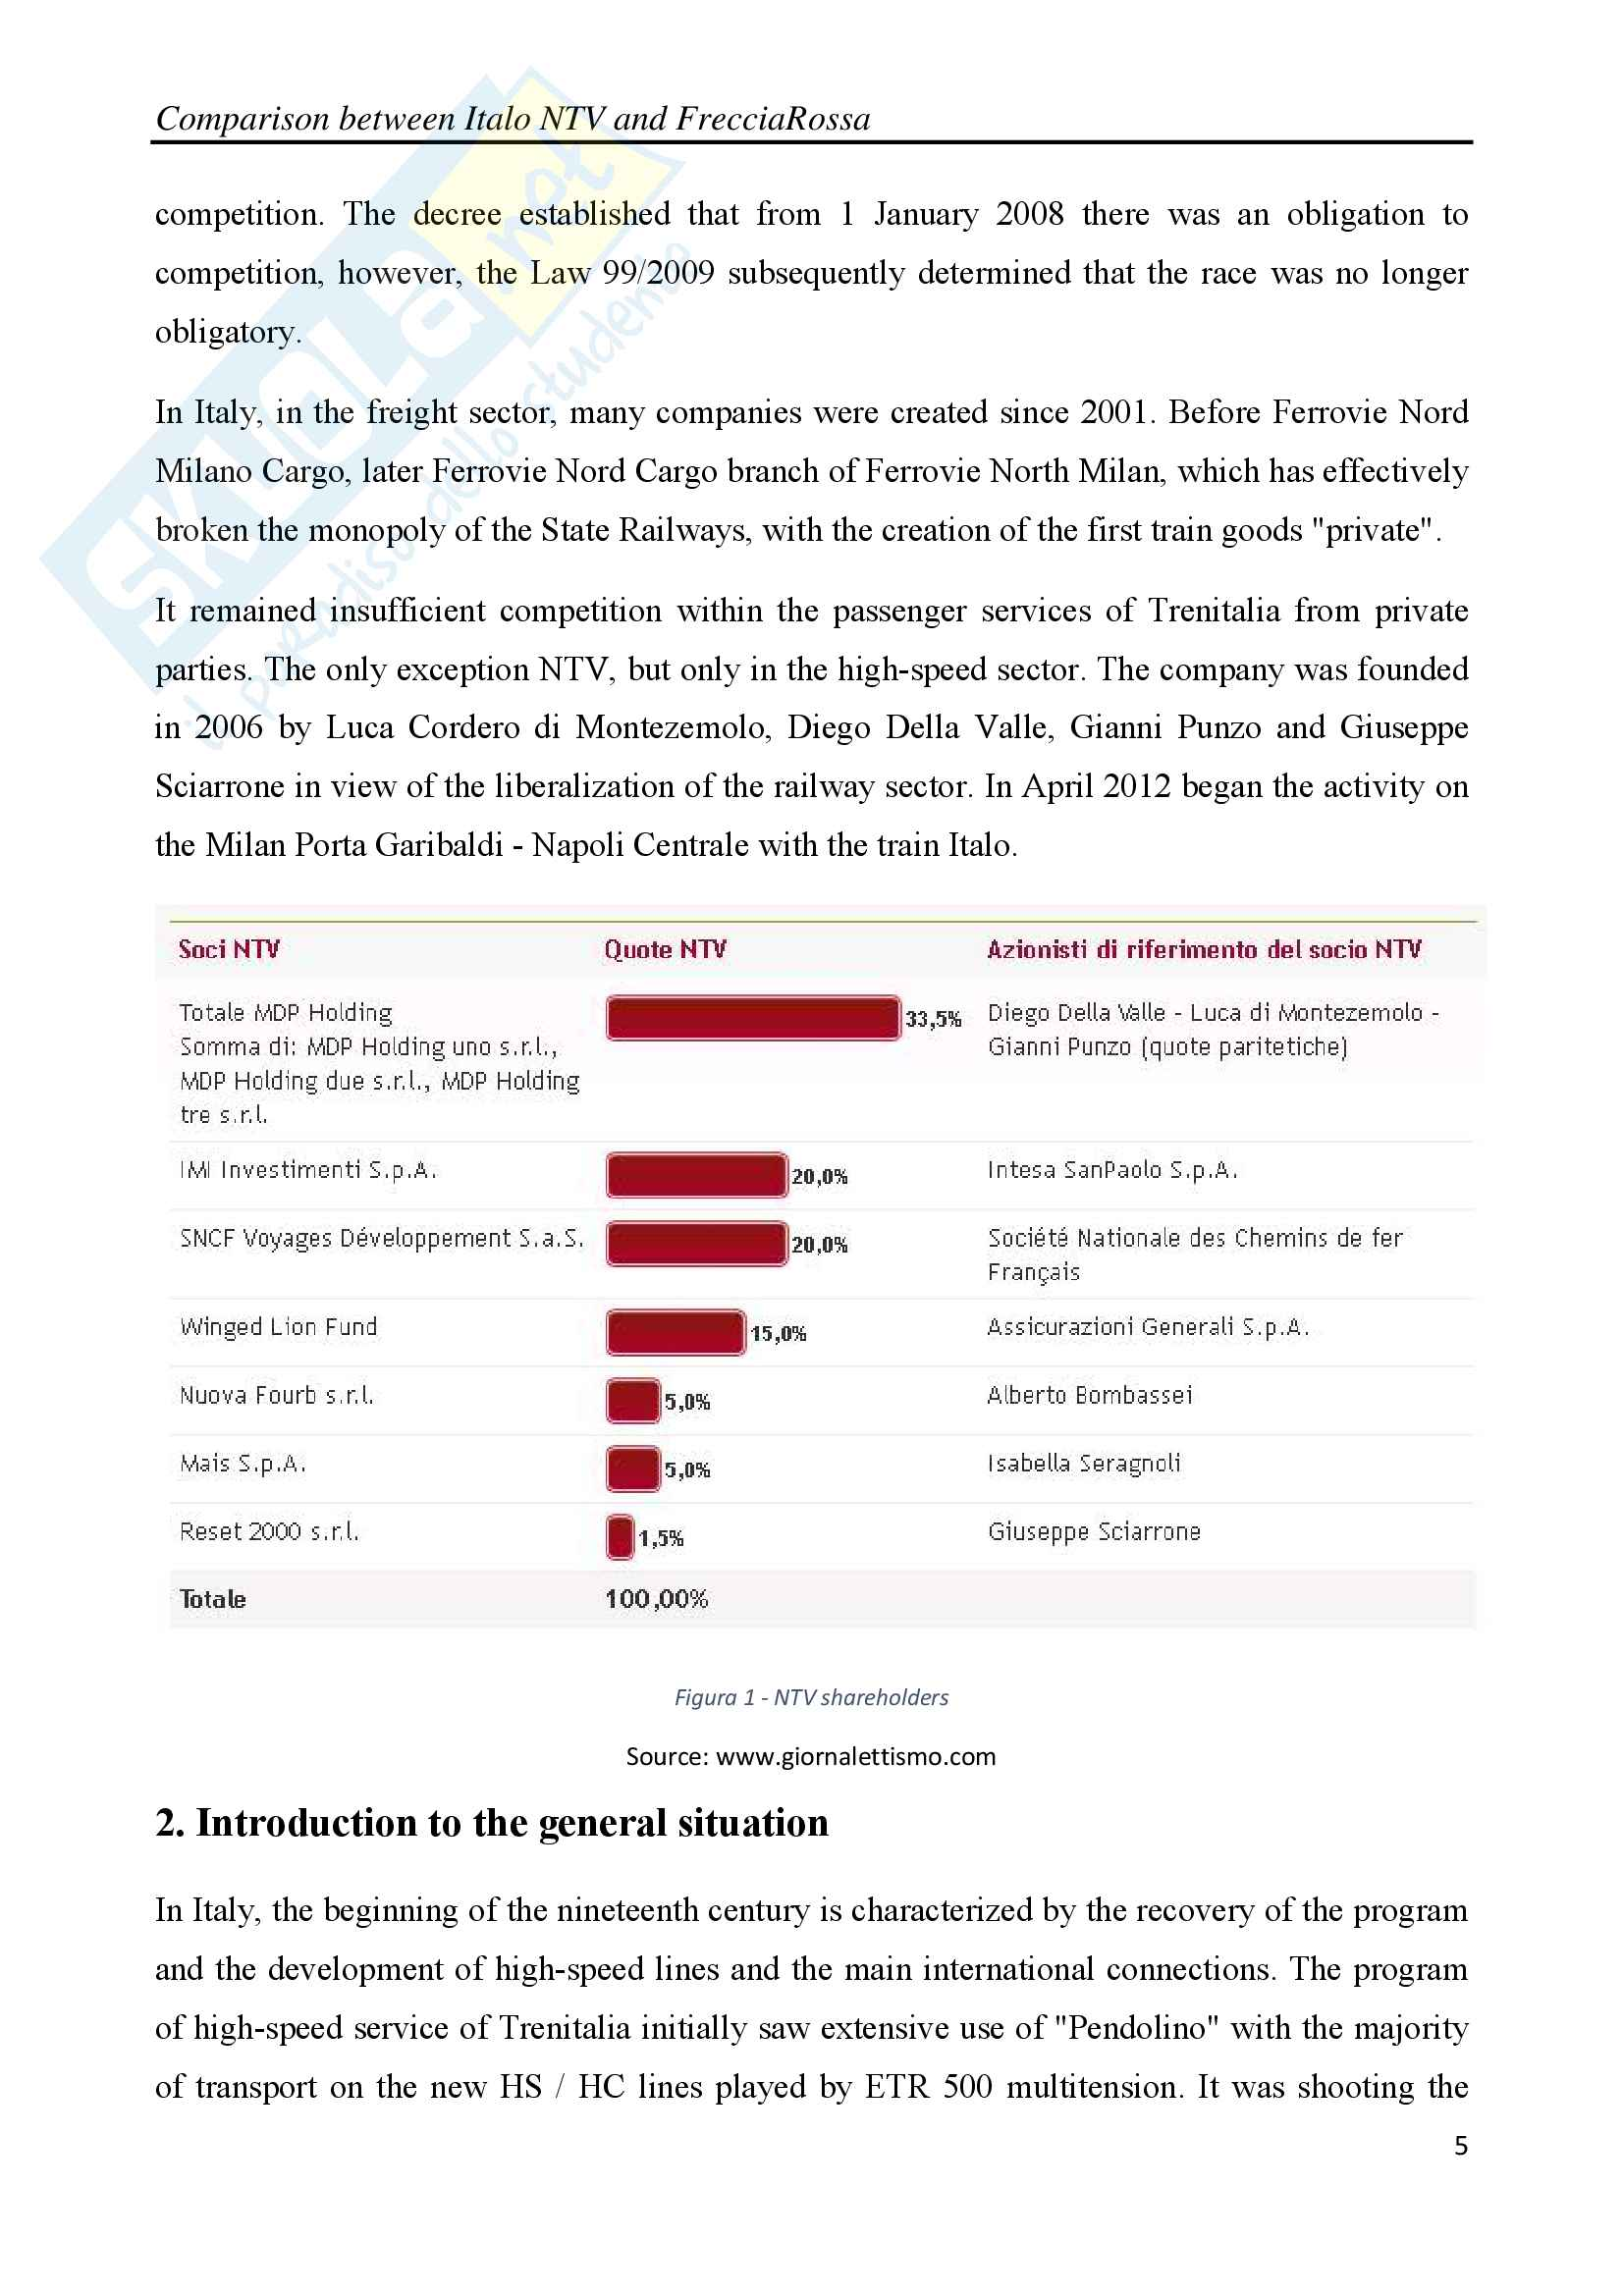 Comparison between Italo NTV and FrecciaRossa with legal, social and economic considerations Pag. 6